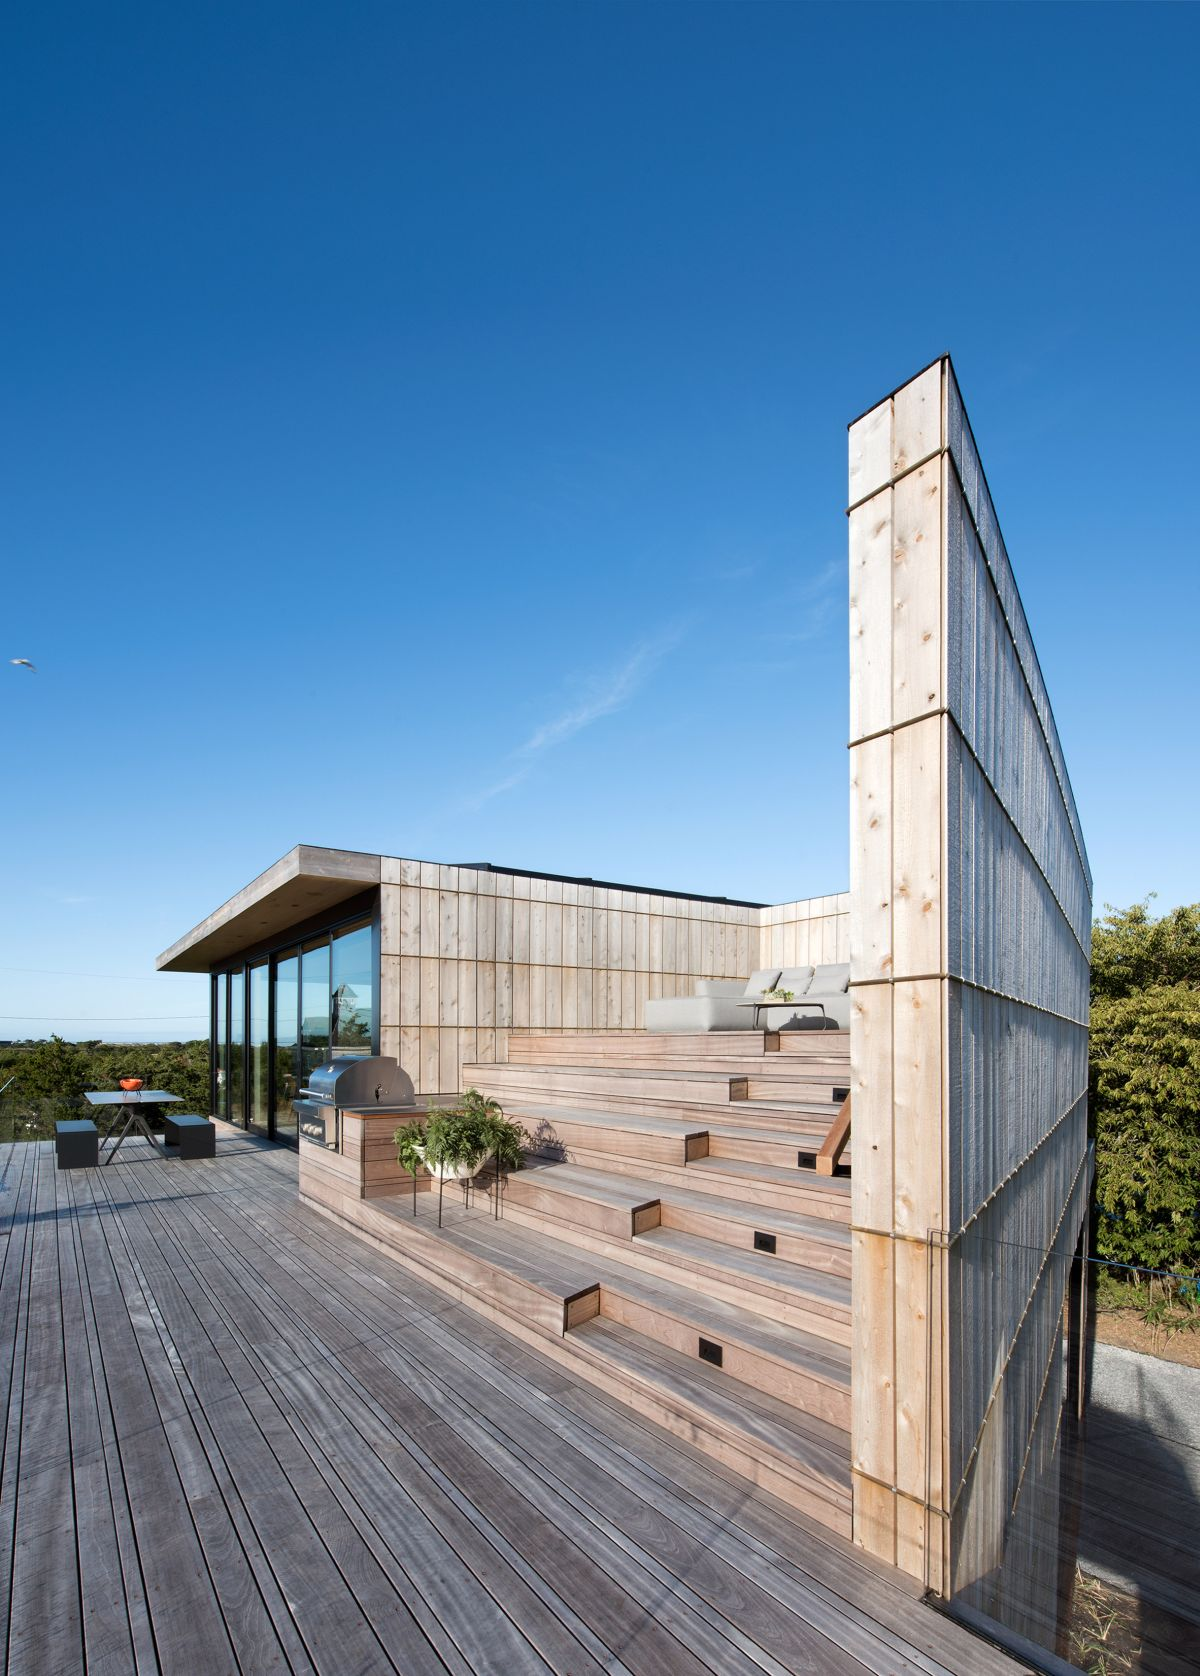 1561104969 753 swoon worthy homes in hamptons that work with the natural landscape - Swoon-Worthy Homes in Hamptons That Work With the Natural Landscape